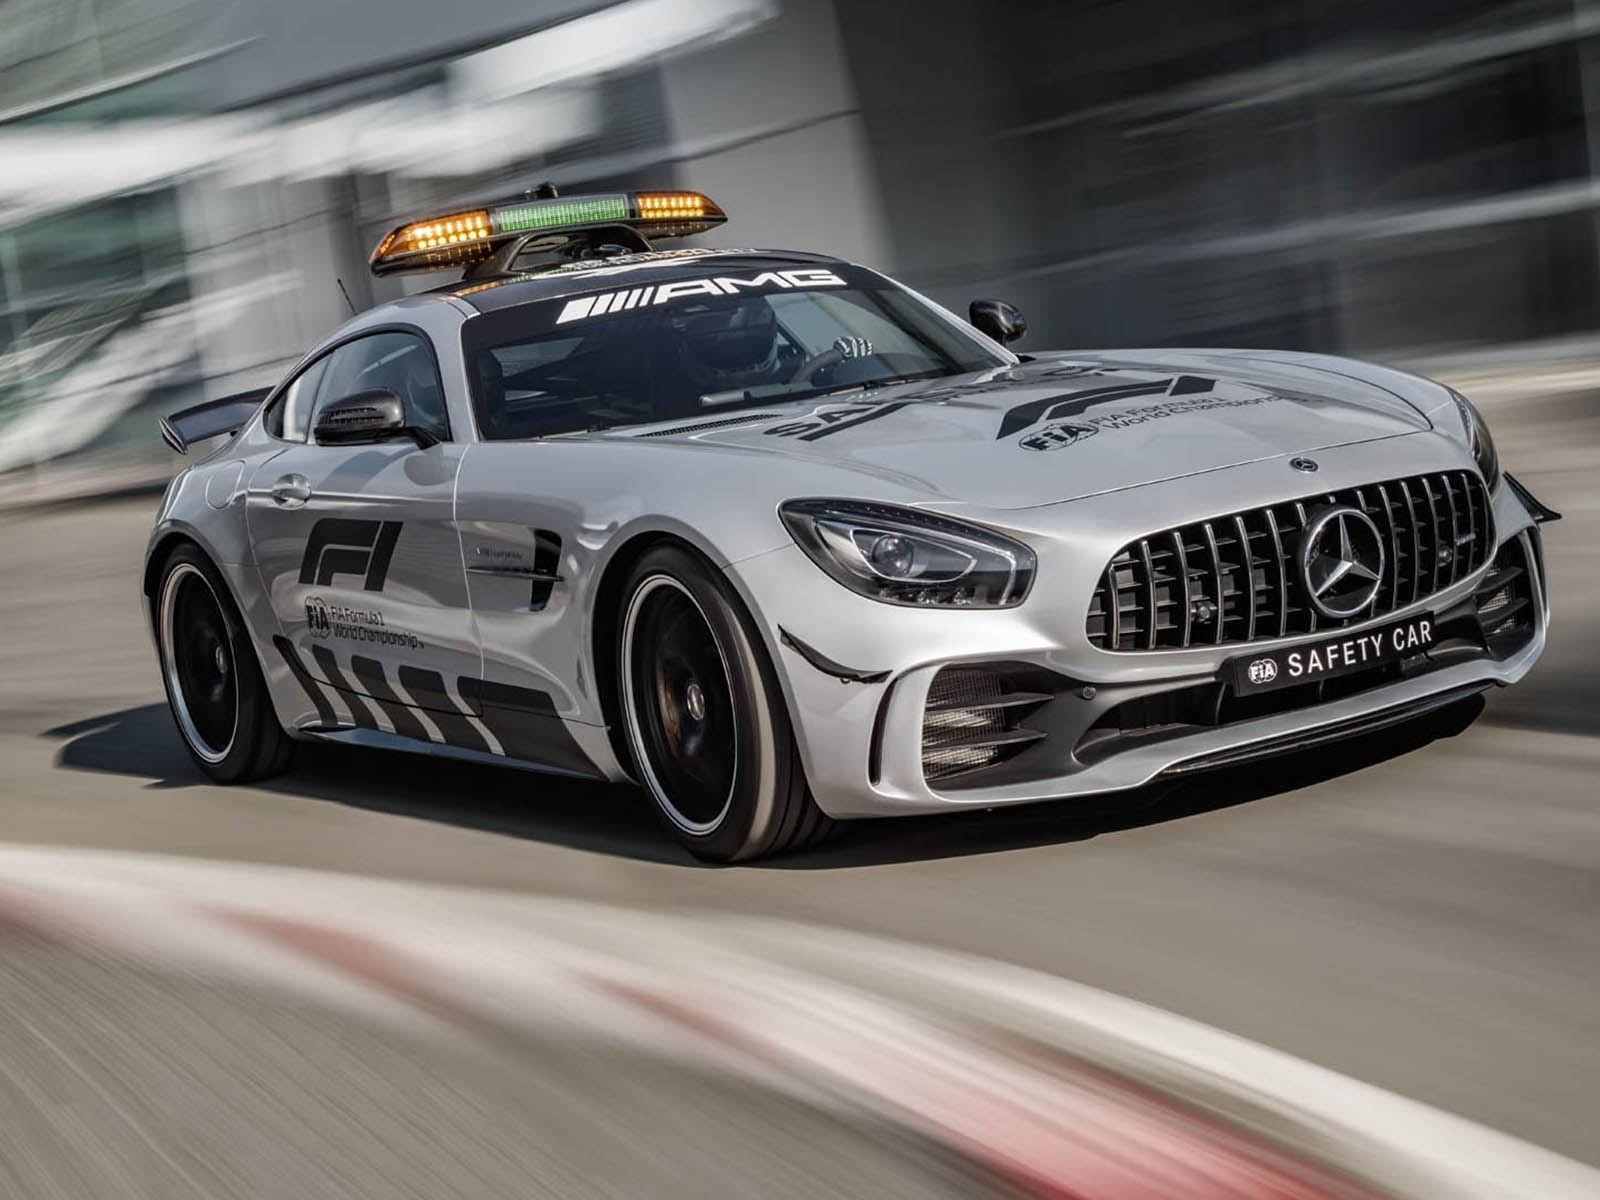 Mercedes AMG GT R Safety Car F1